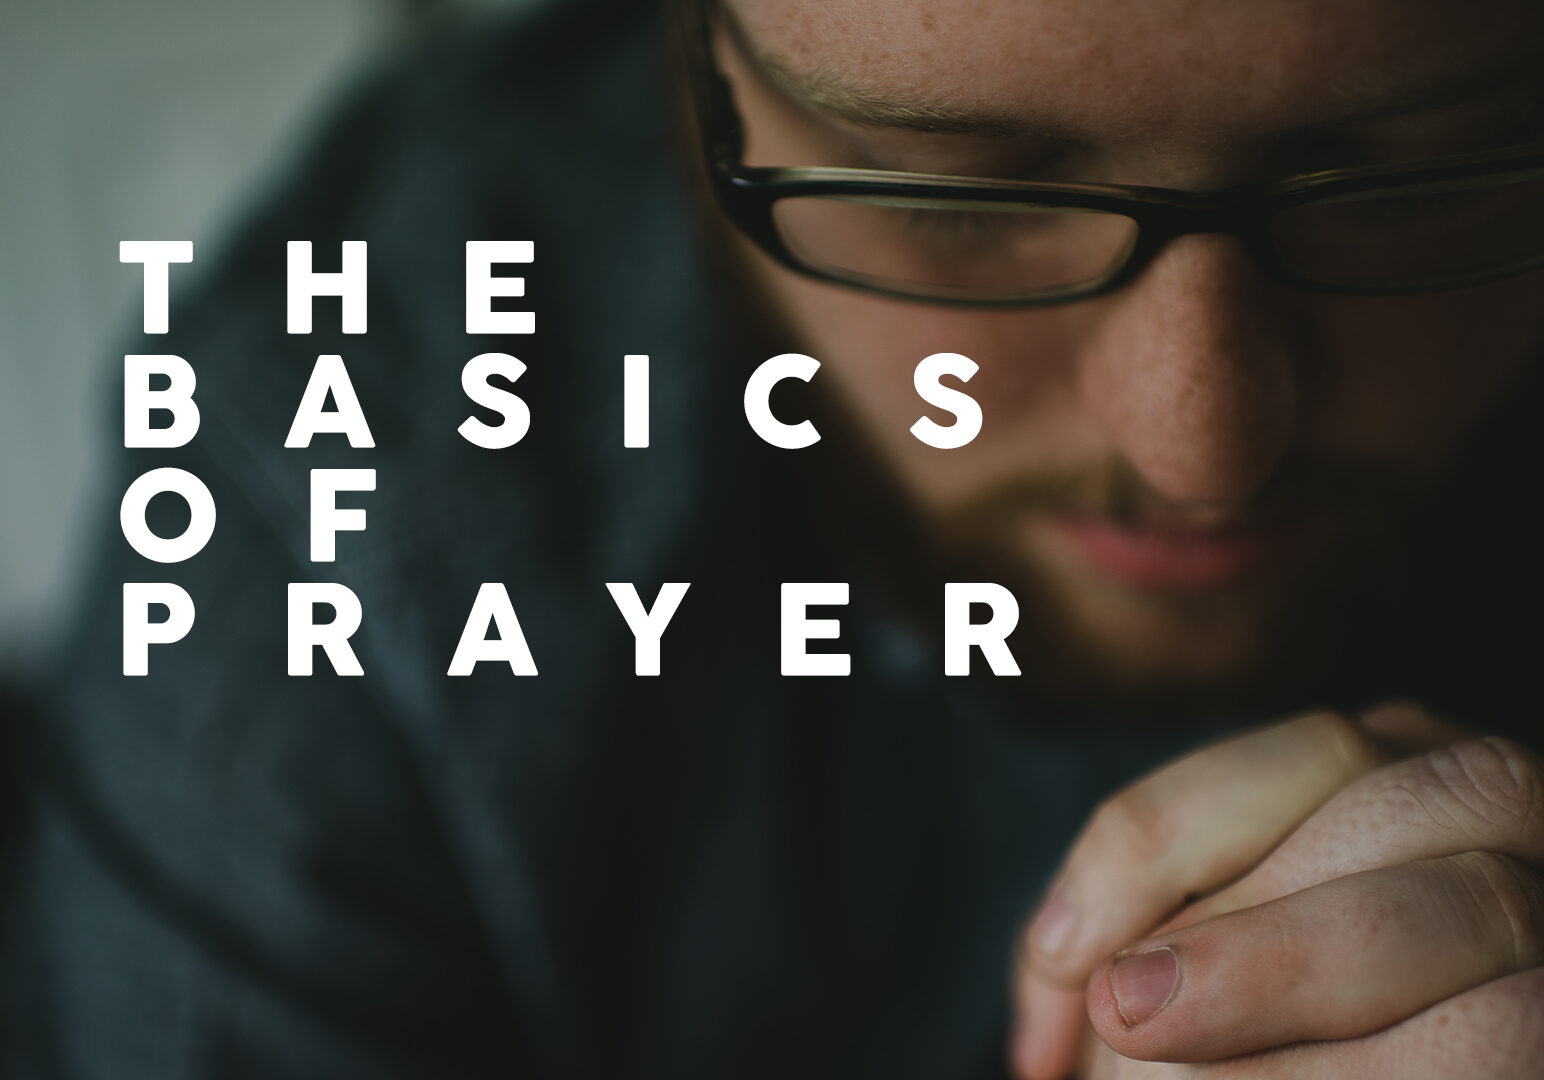 Thebasicsofprayer_WIDE_APP